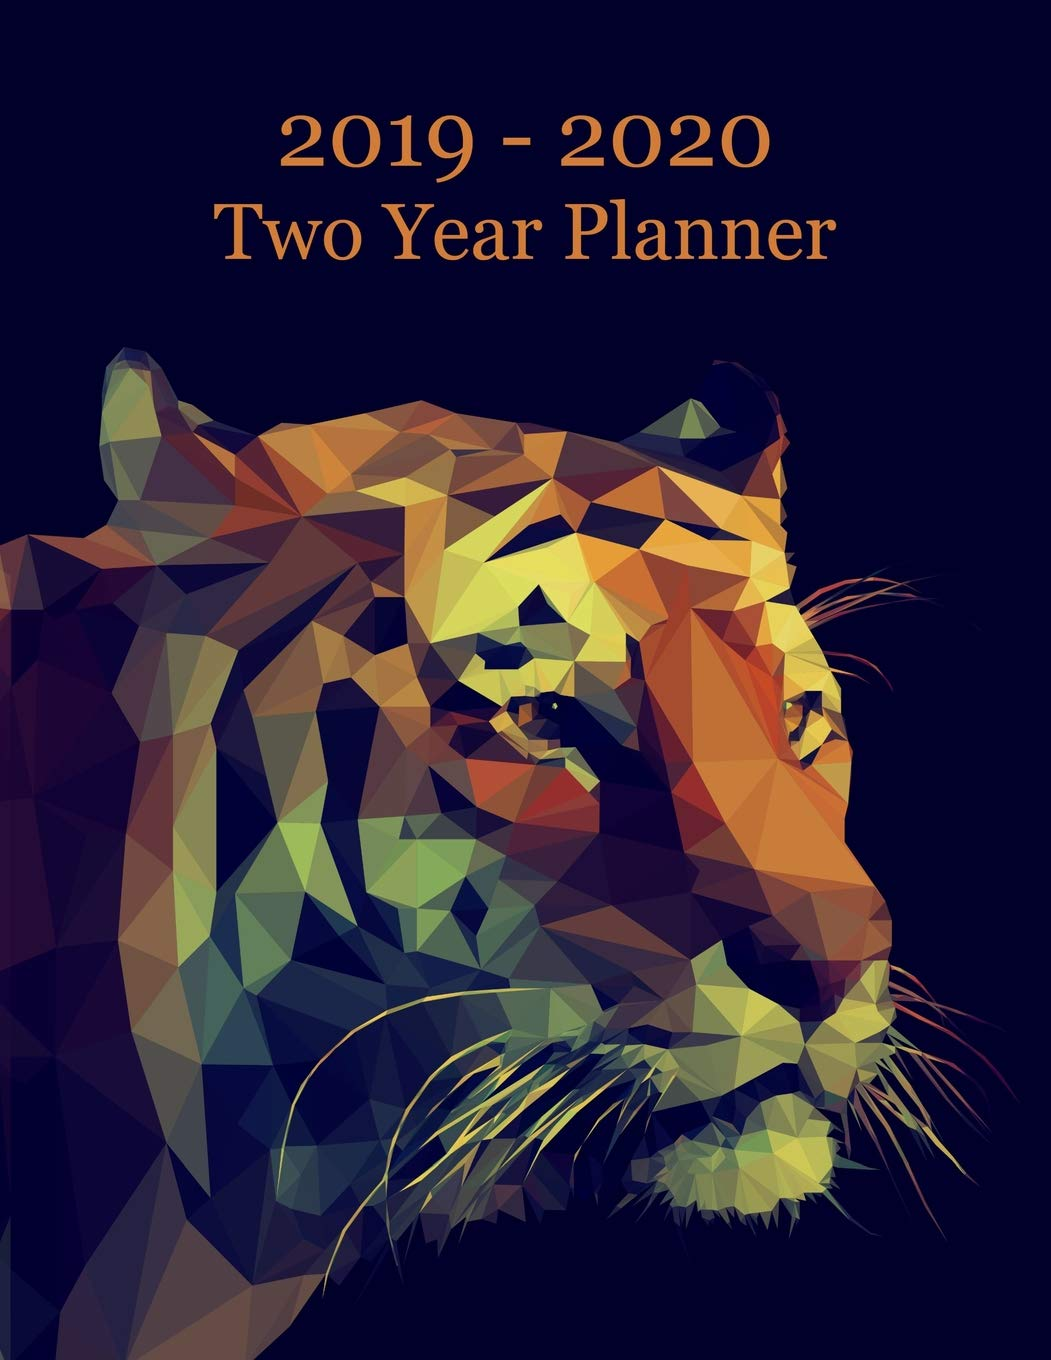 2019 - 2020 Two Year Planner: Tiger Cover - Includes Major U S